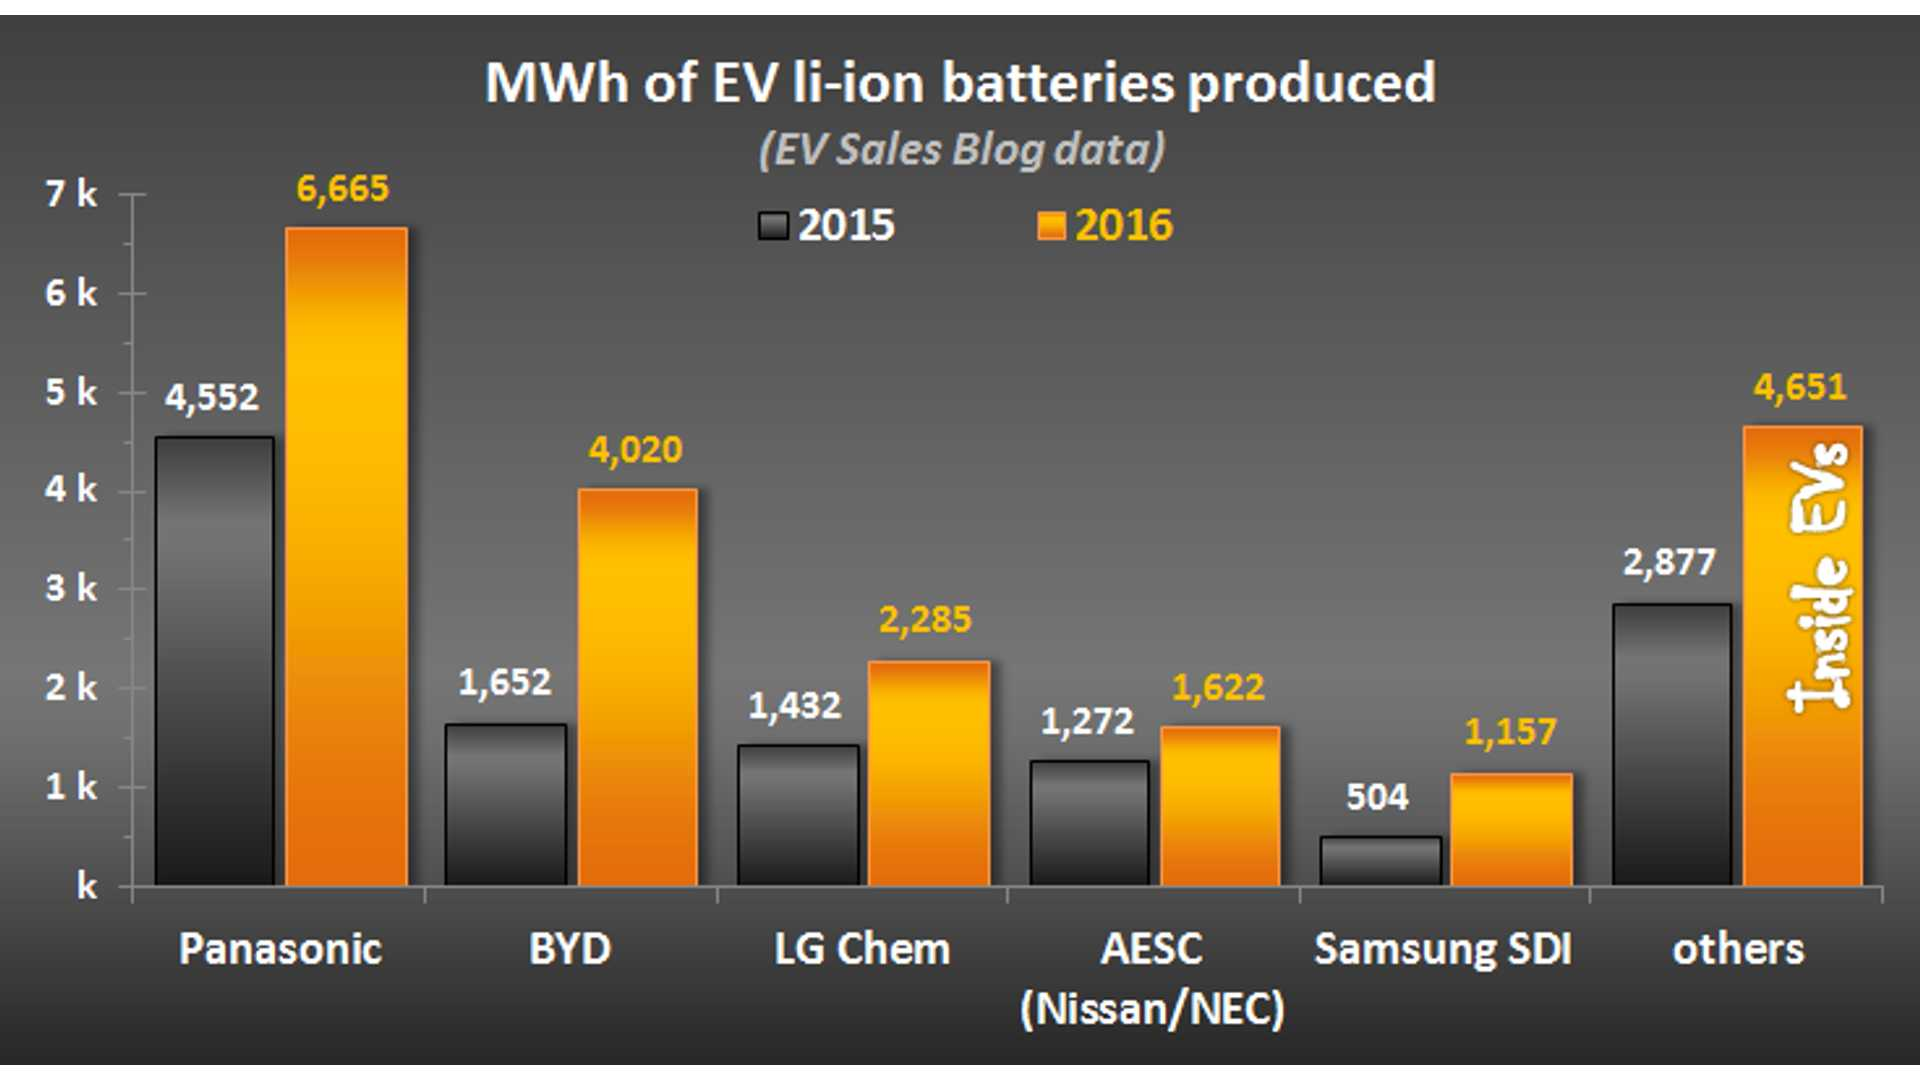 Ev Battery Makers 2016 Panasonic And Byd Combine To Hold Majority Of Market